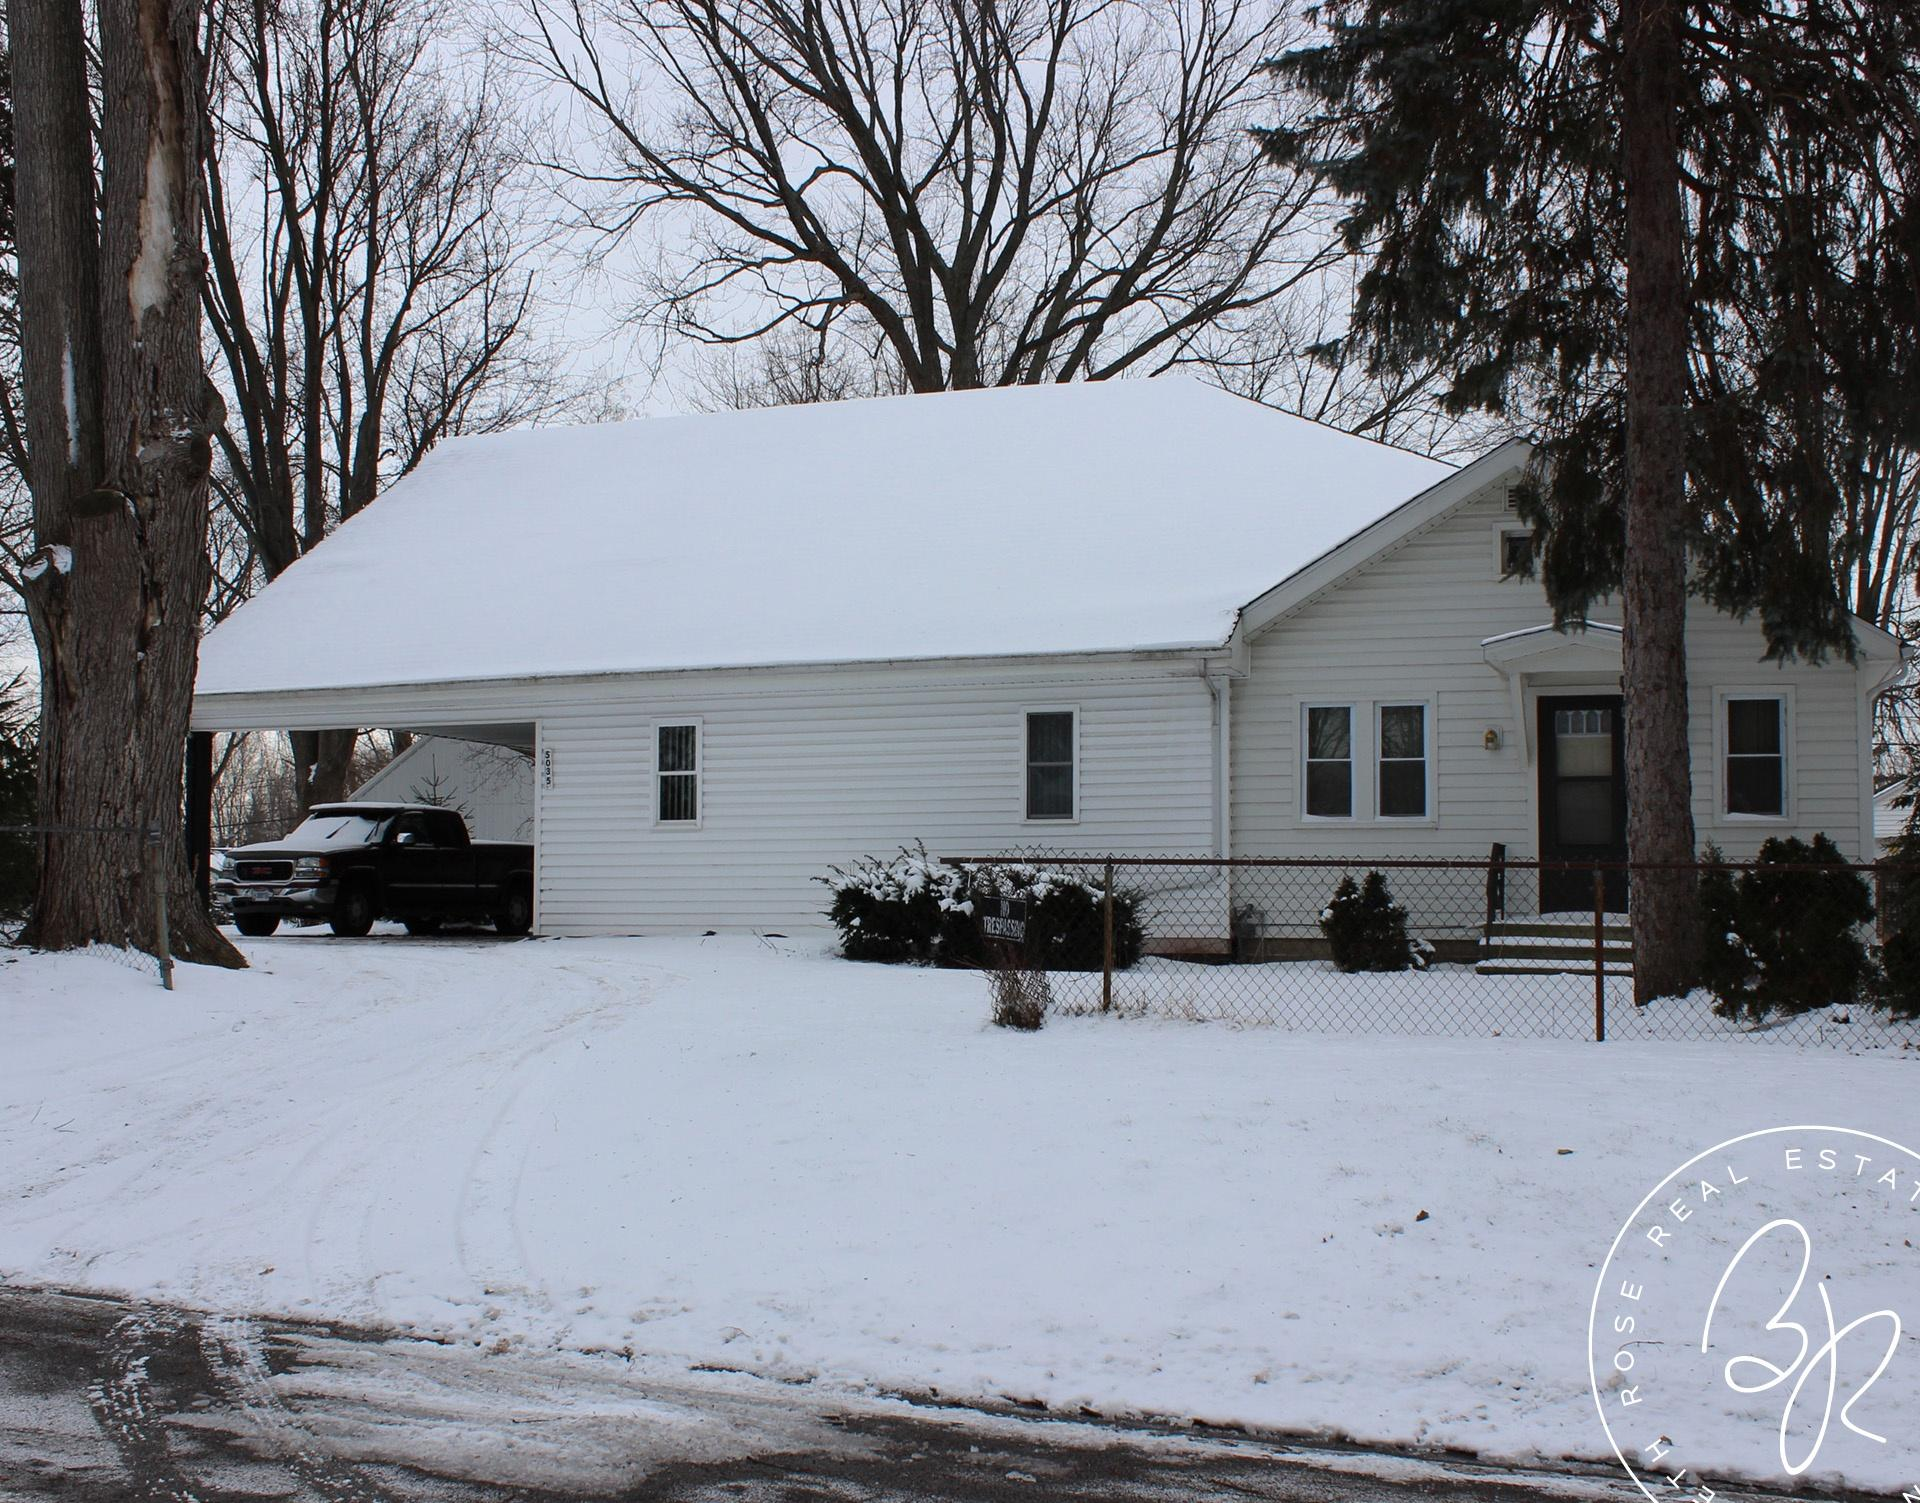 5035 Kitchener Dr, Toledo, OH 43615 - Estimate and Home Details | Trulia